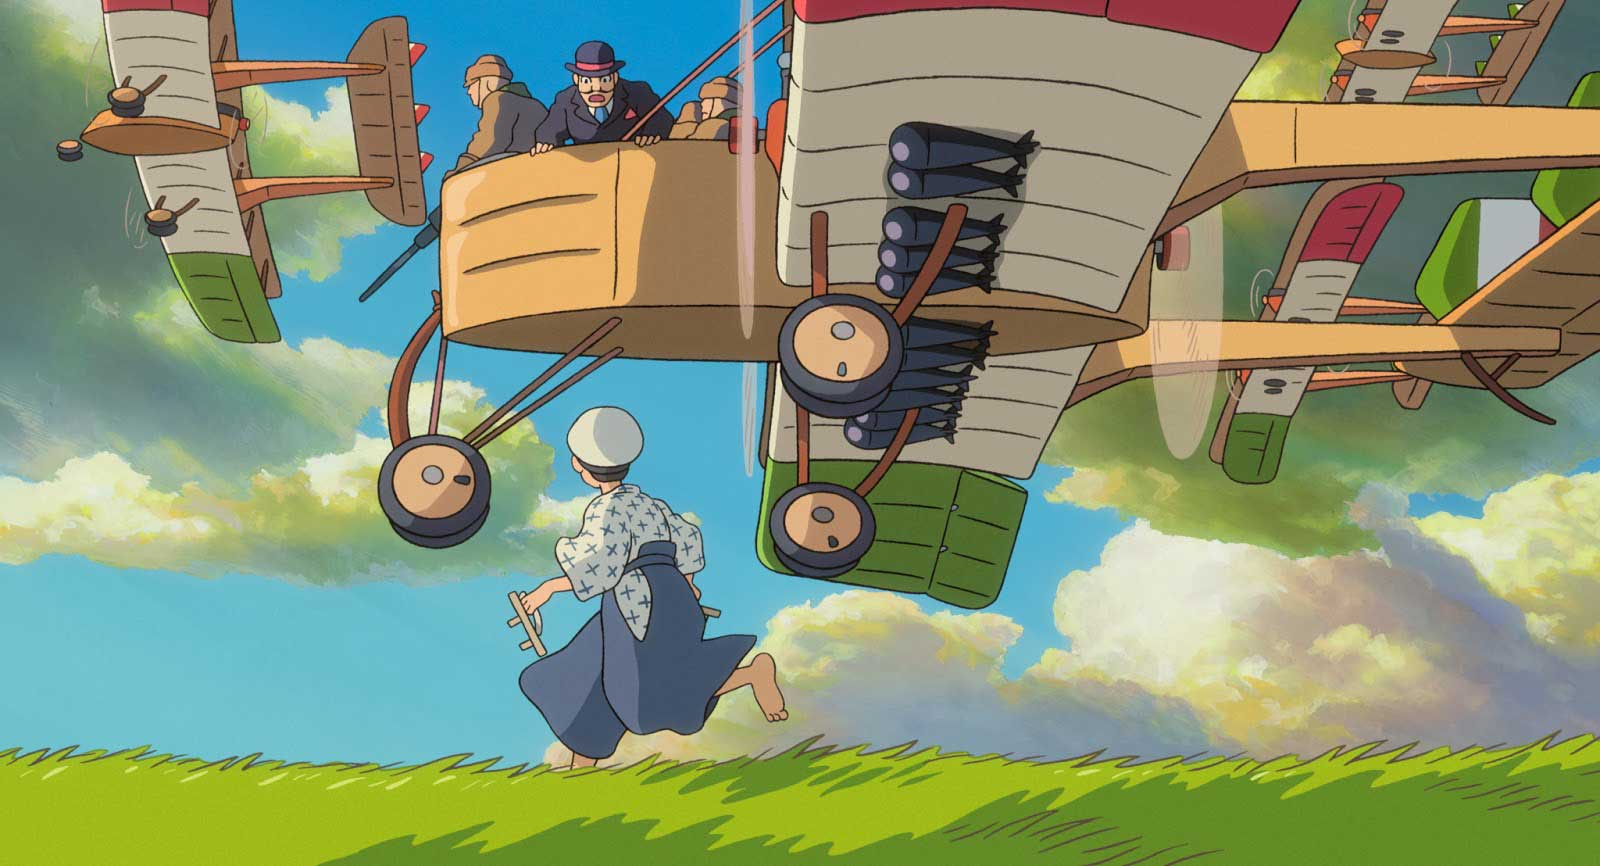 Jiro Horikoshi and Caproni's airplane in The Wind Rises by Hayao Miyazaki